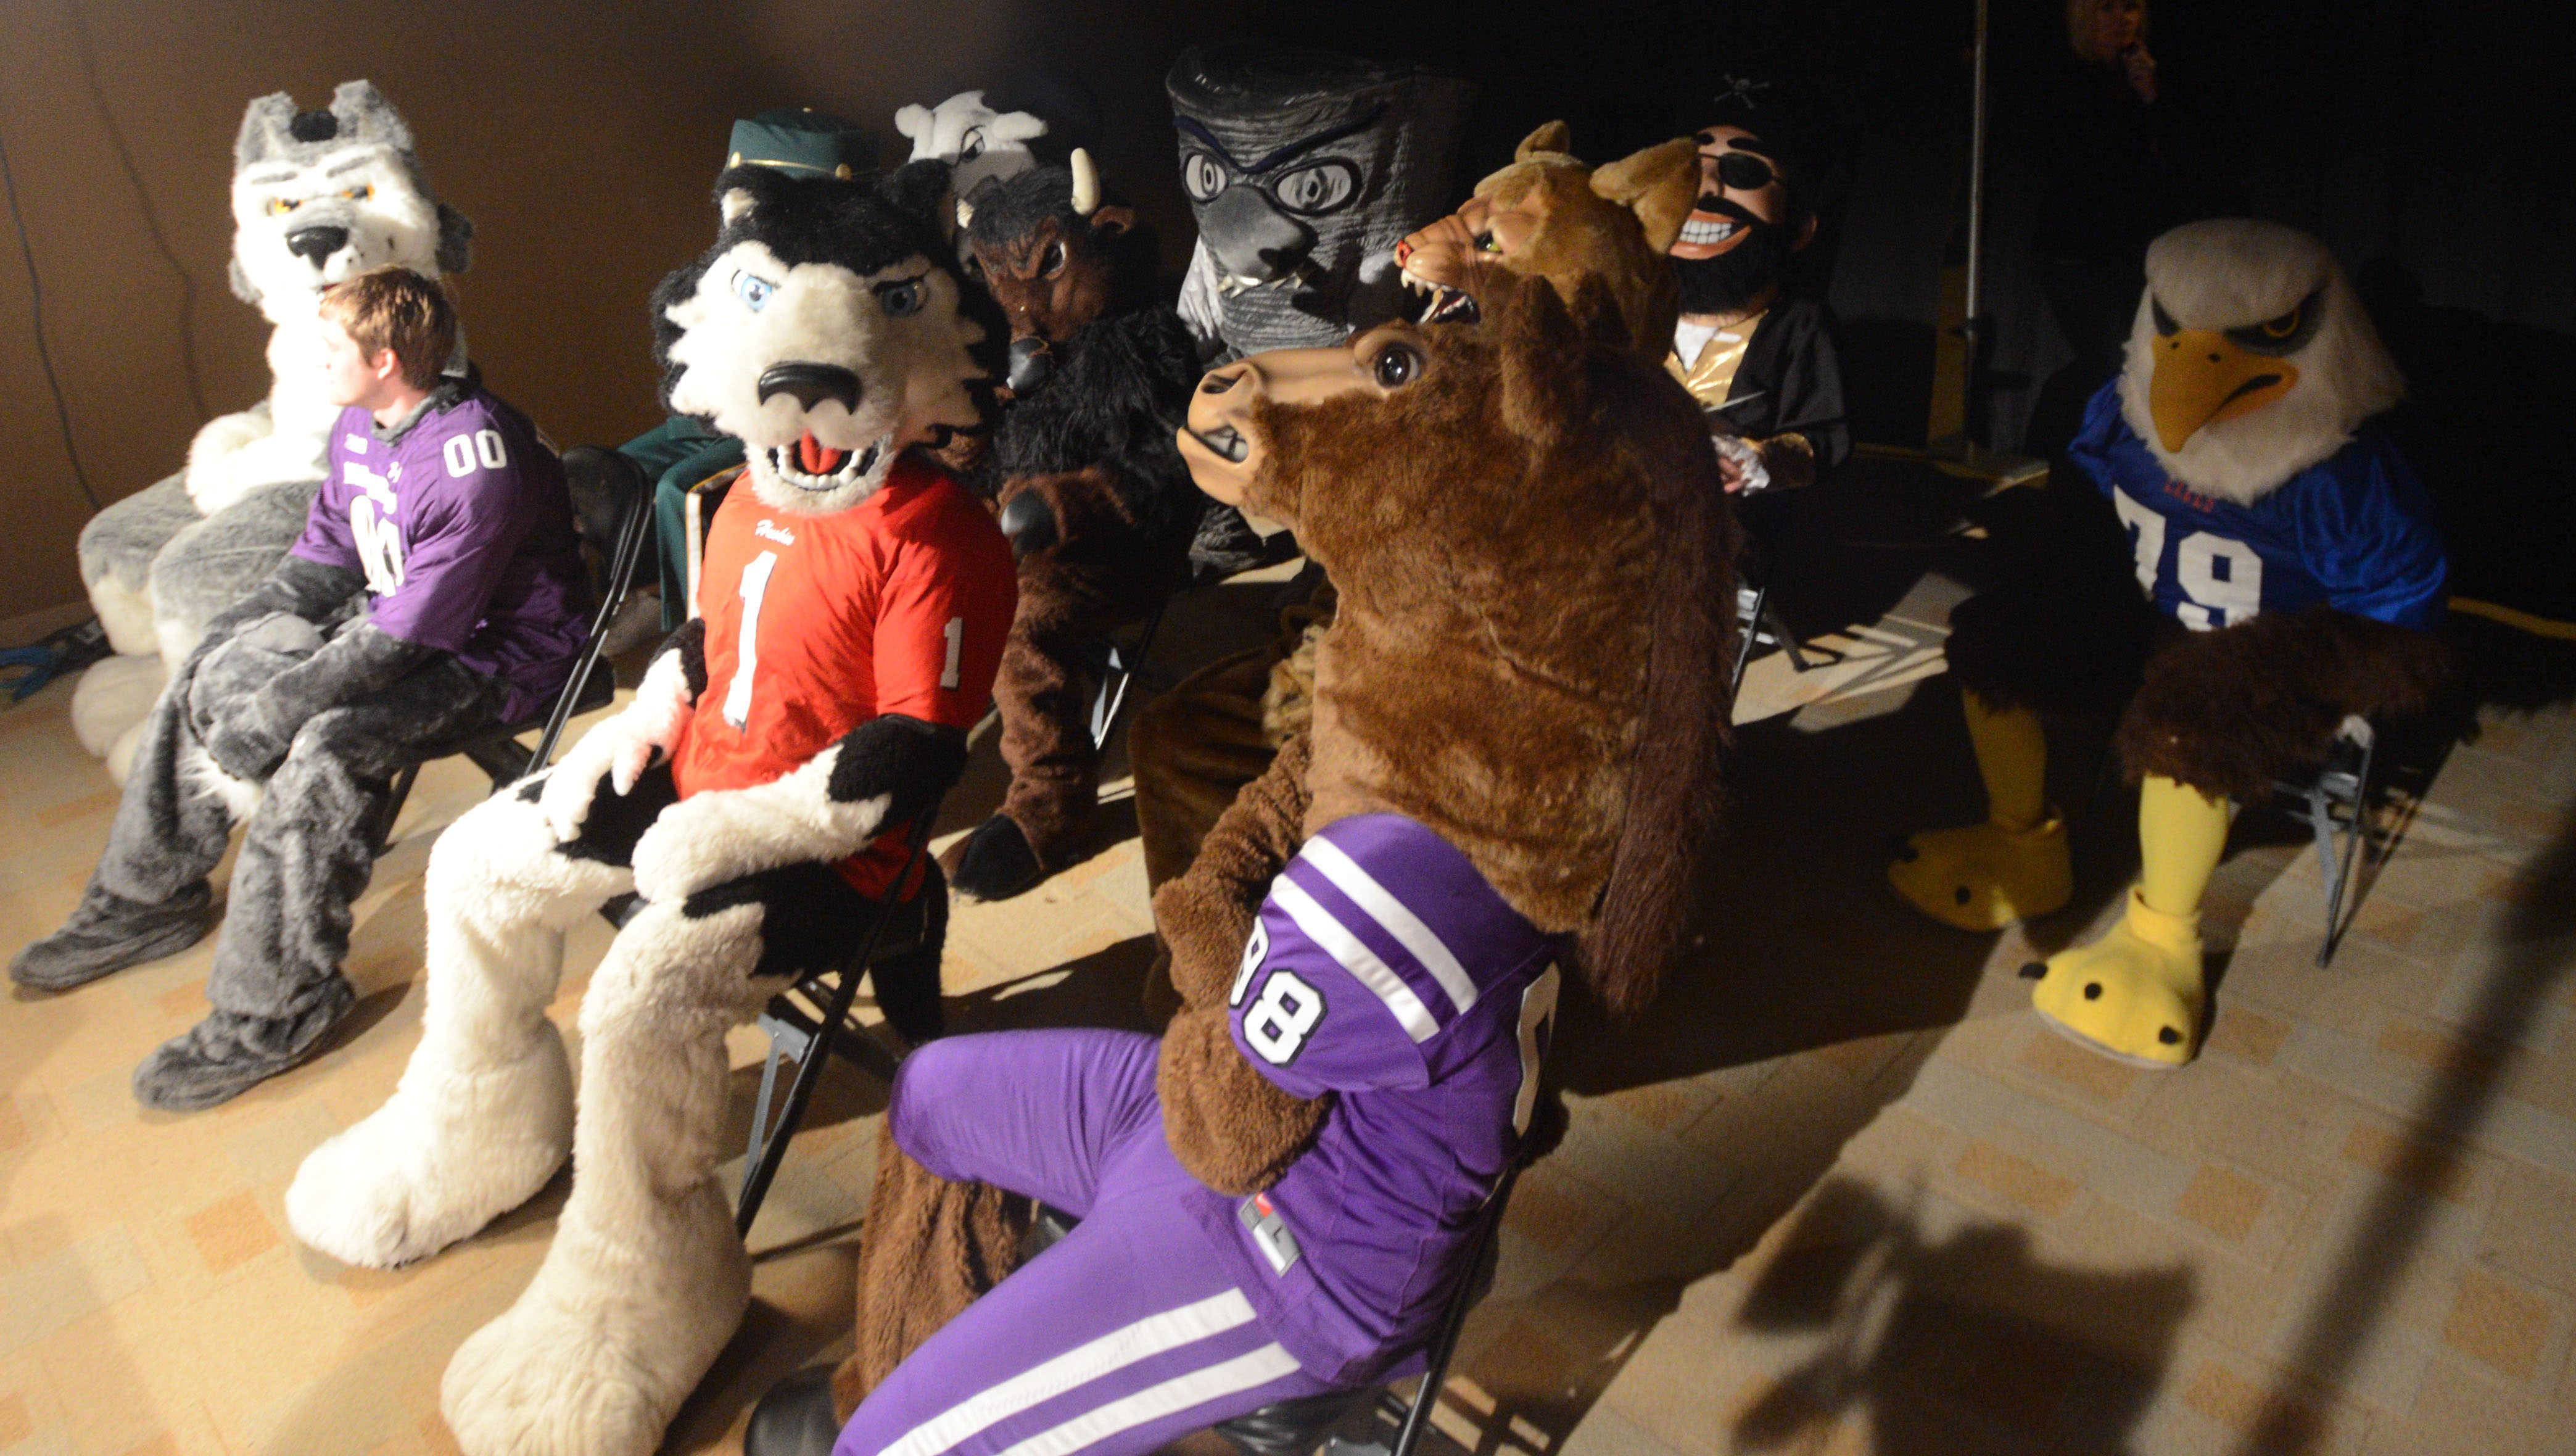 Local high school mascots sit together at the Daily Herald Prep Sports Excellence event at the Sears Centre in Hoffman Estates on Sunday afternoon.